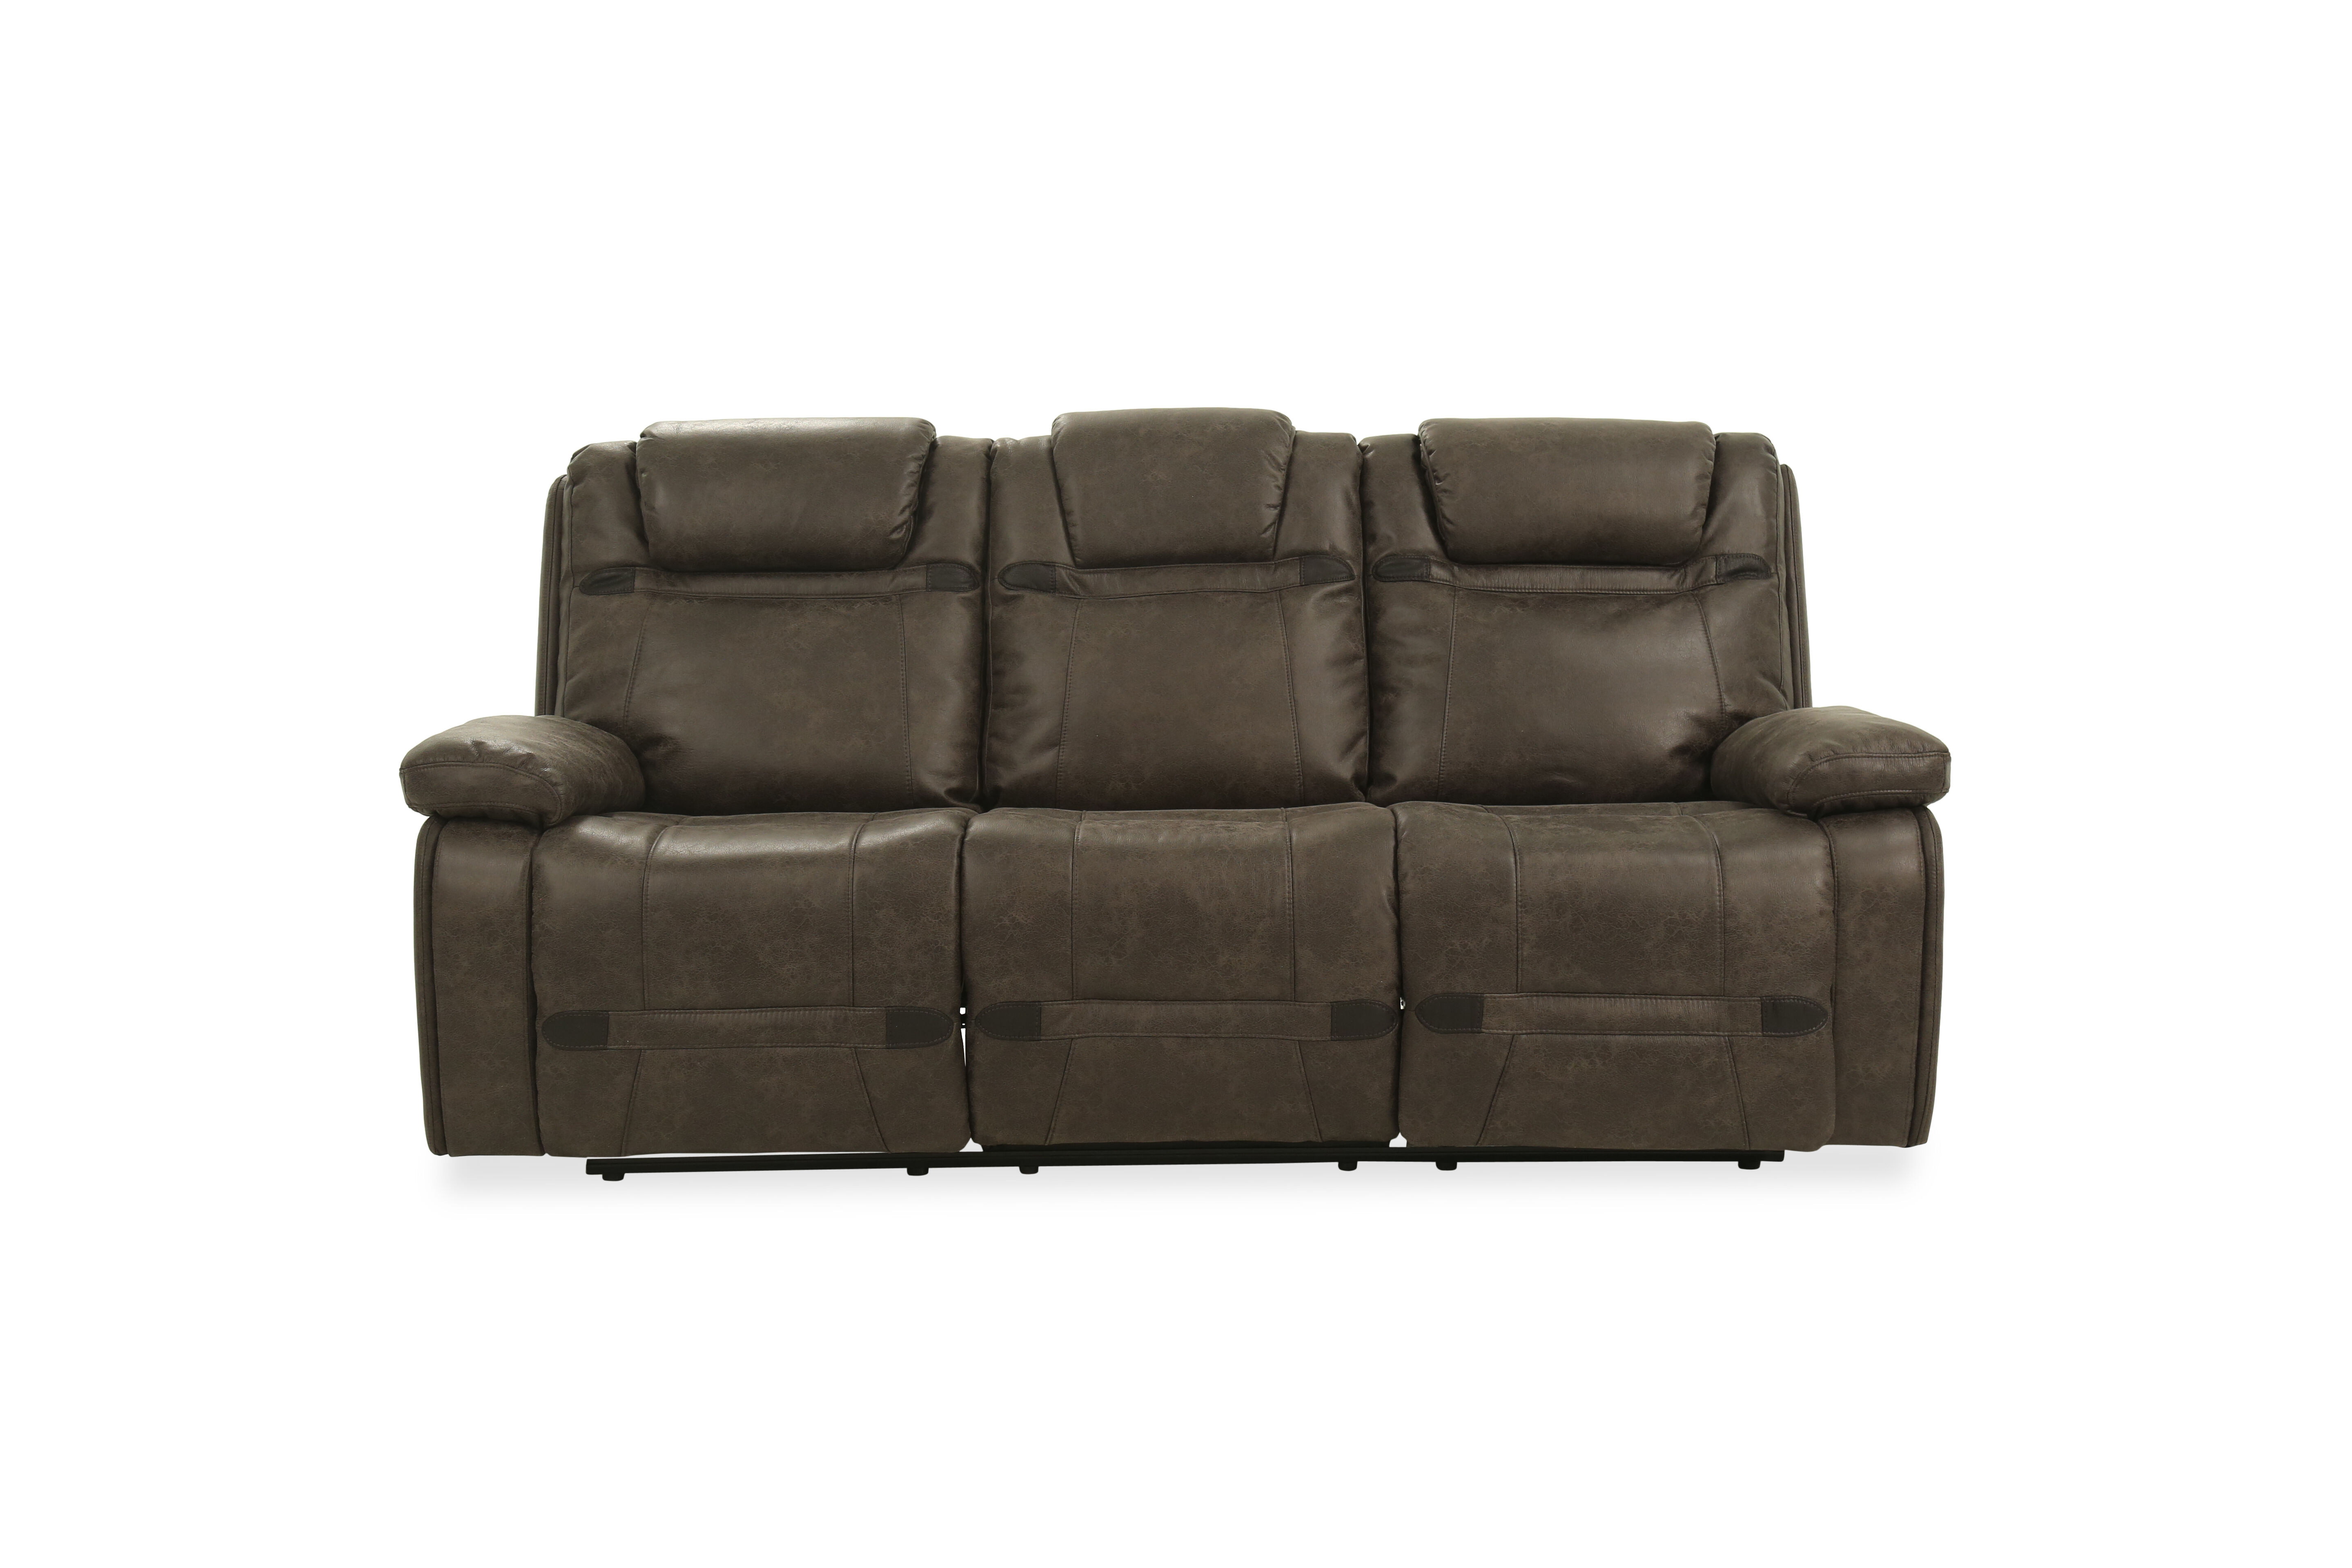 Flaunting Plush Leather Upholstery, This Casual Style Power Reclining Sofa  Lends An Effortless Makeover To Your Living Room Presentation.